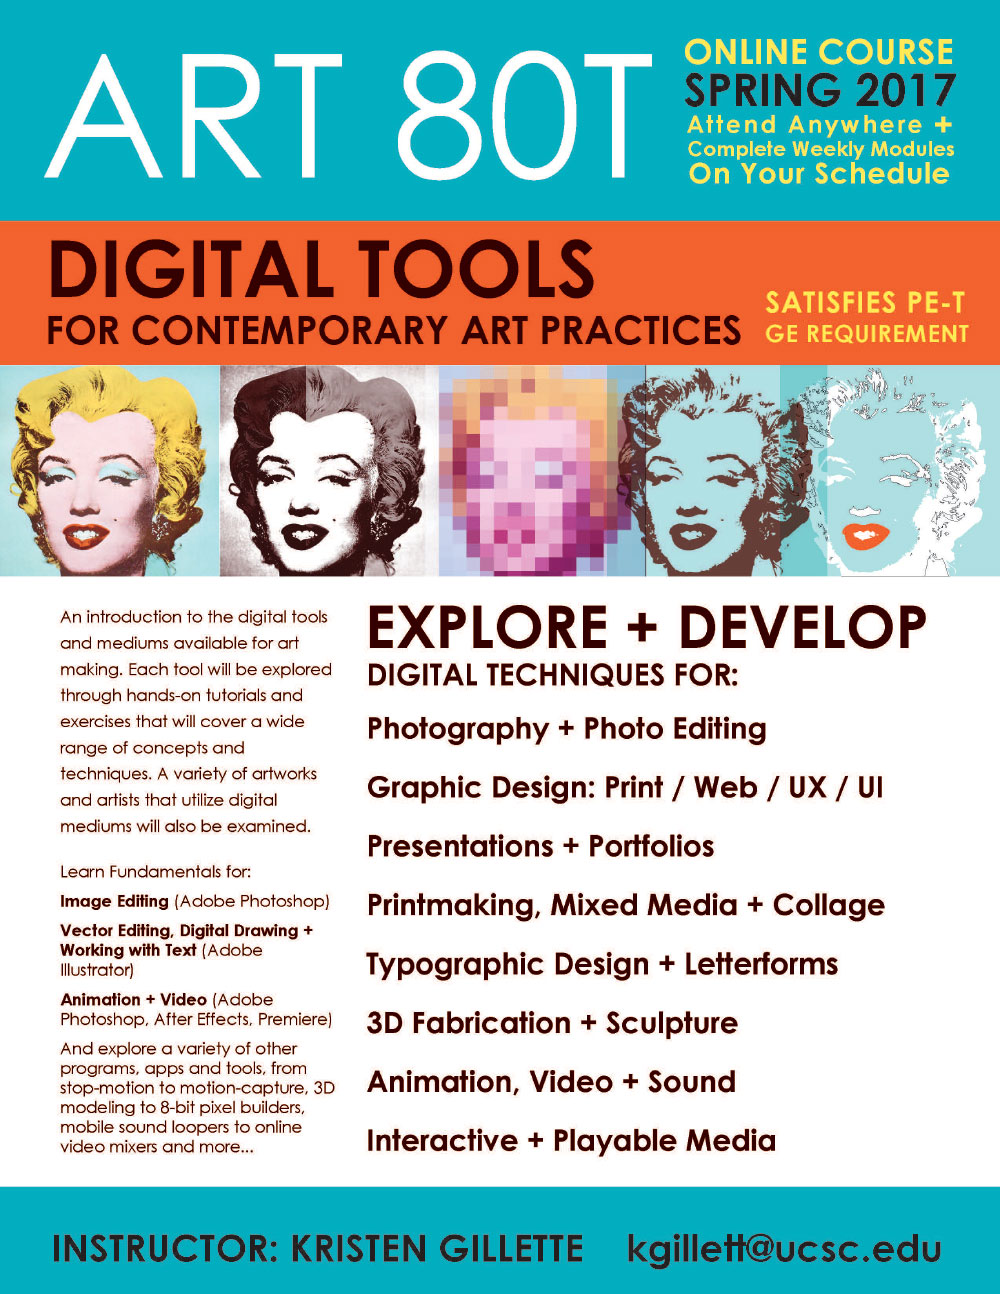 digital tools for contemporary art practice online course art art 80t poster 317 95 kb